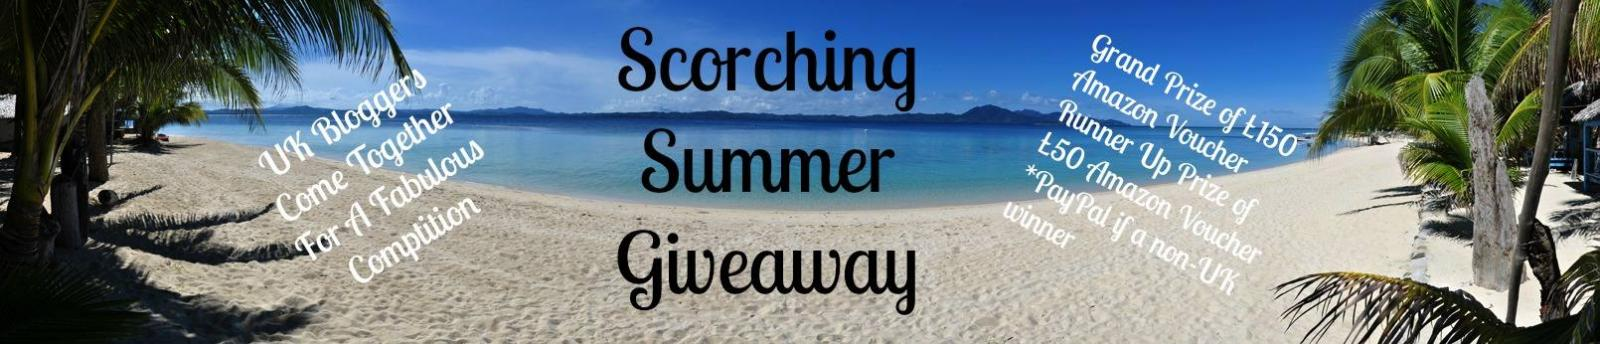 Scorching Summer Giveaway Banner